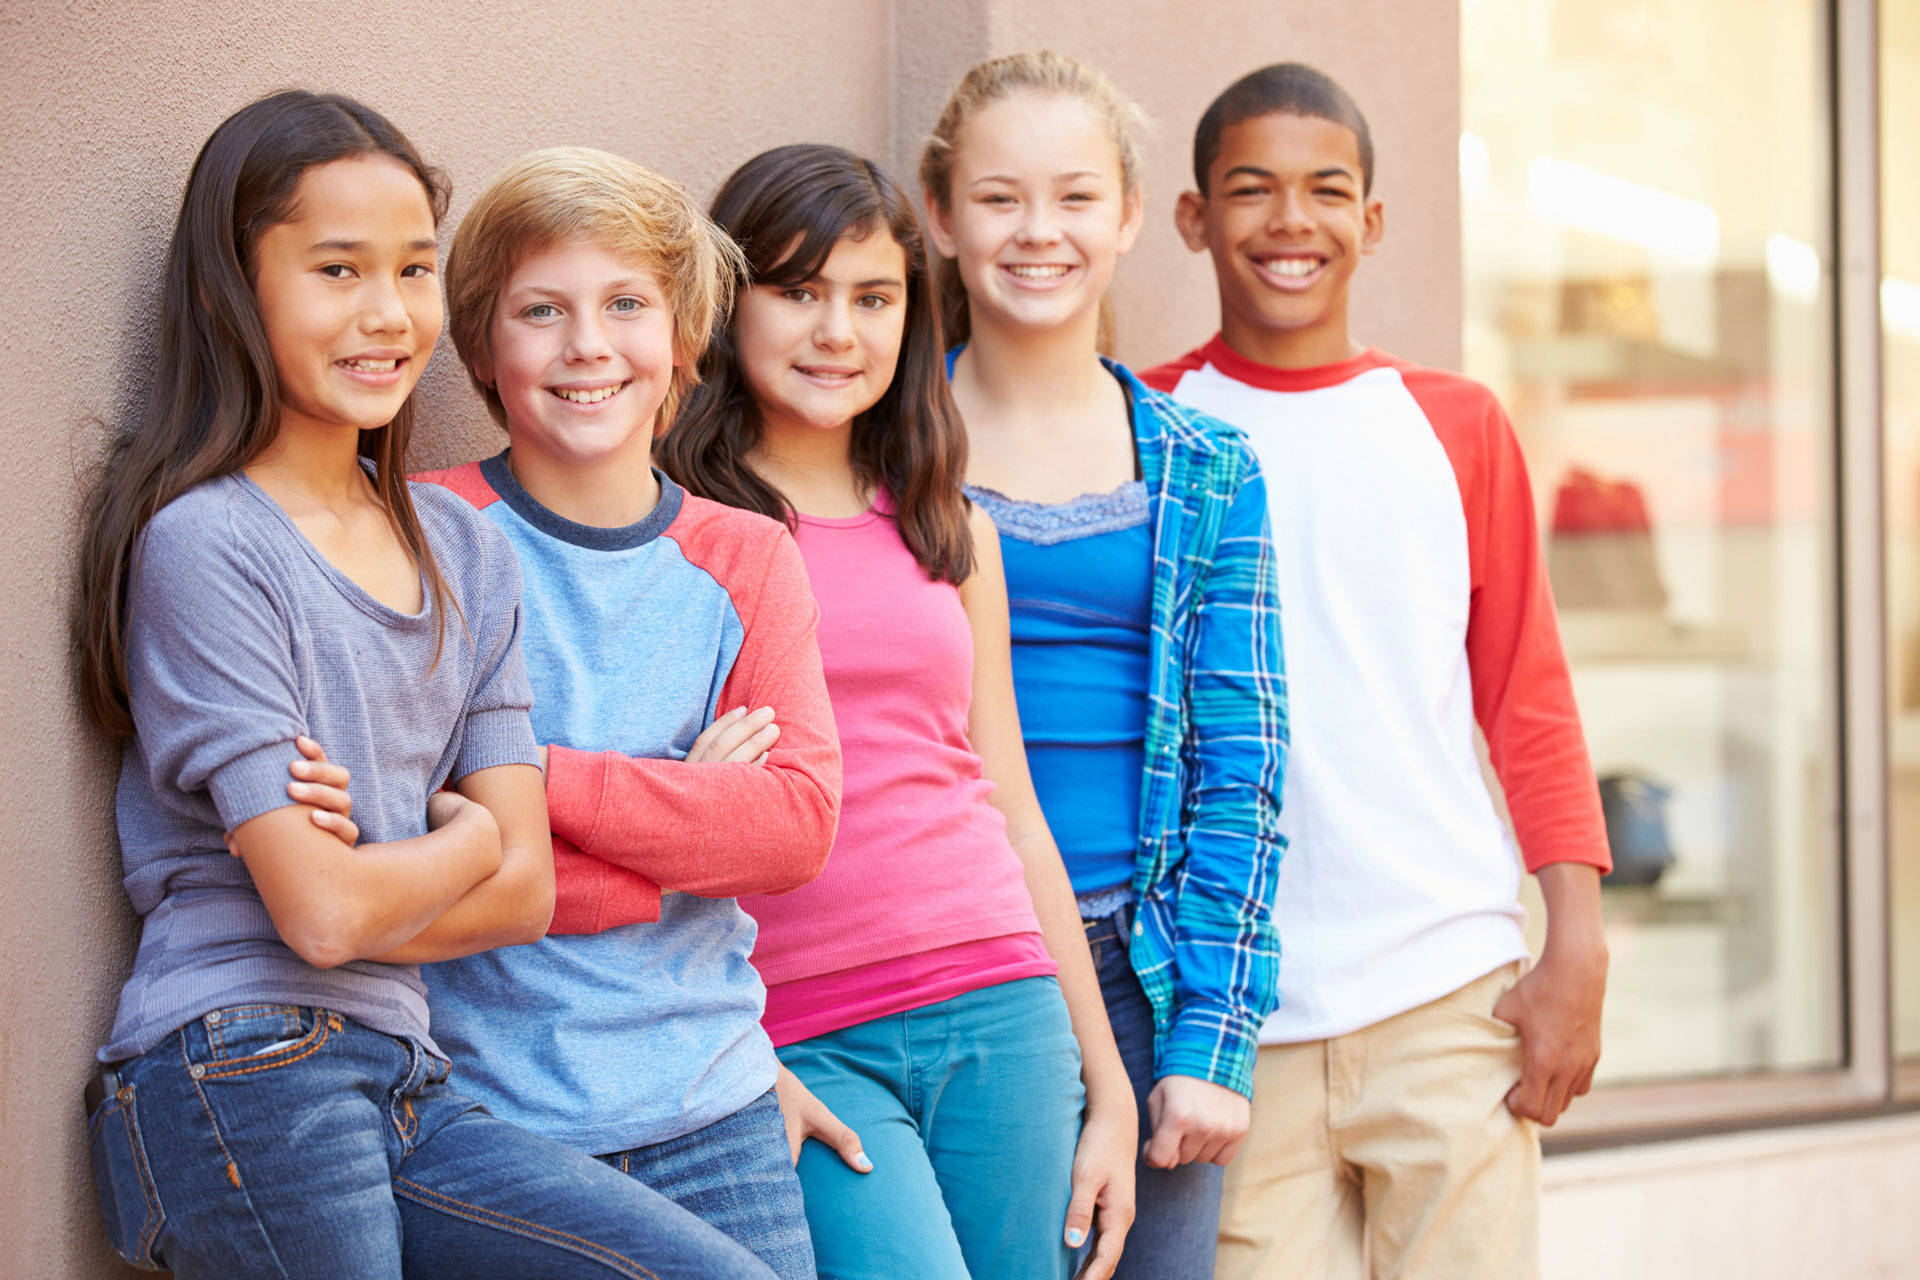 TWEENS / TEENS – What's going in their heads?